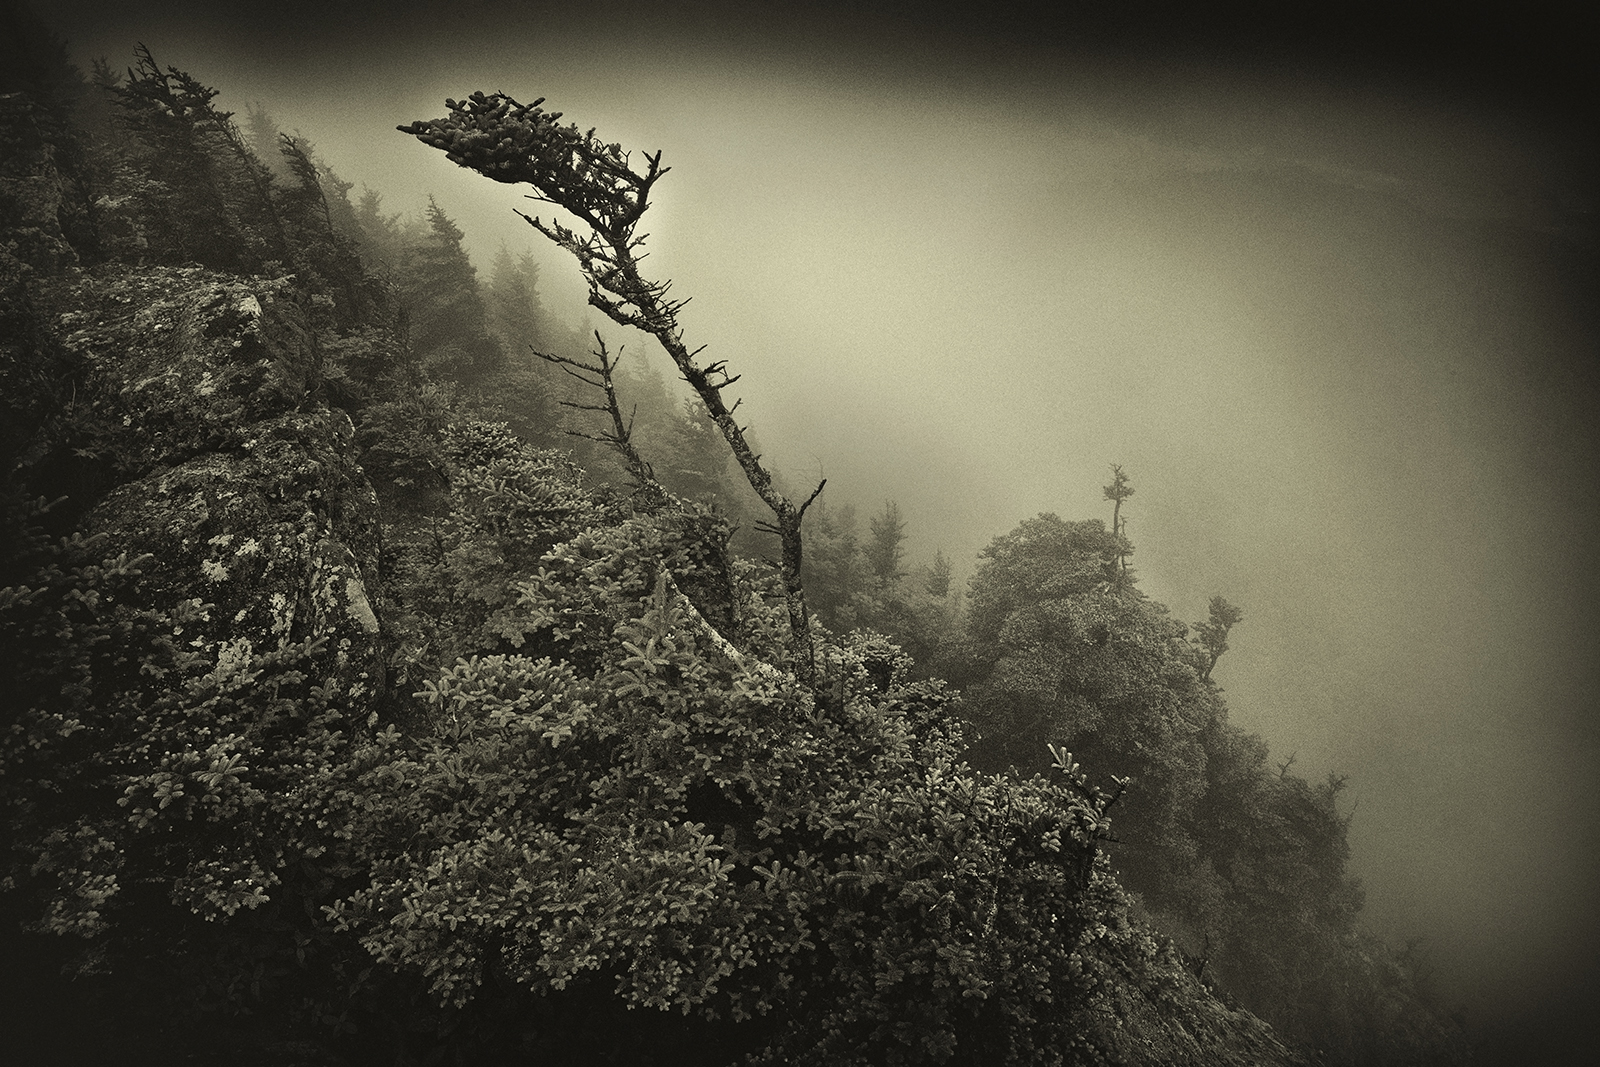 Roan Mountain Bent Tree in the Mist